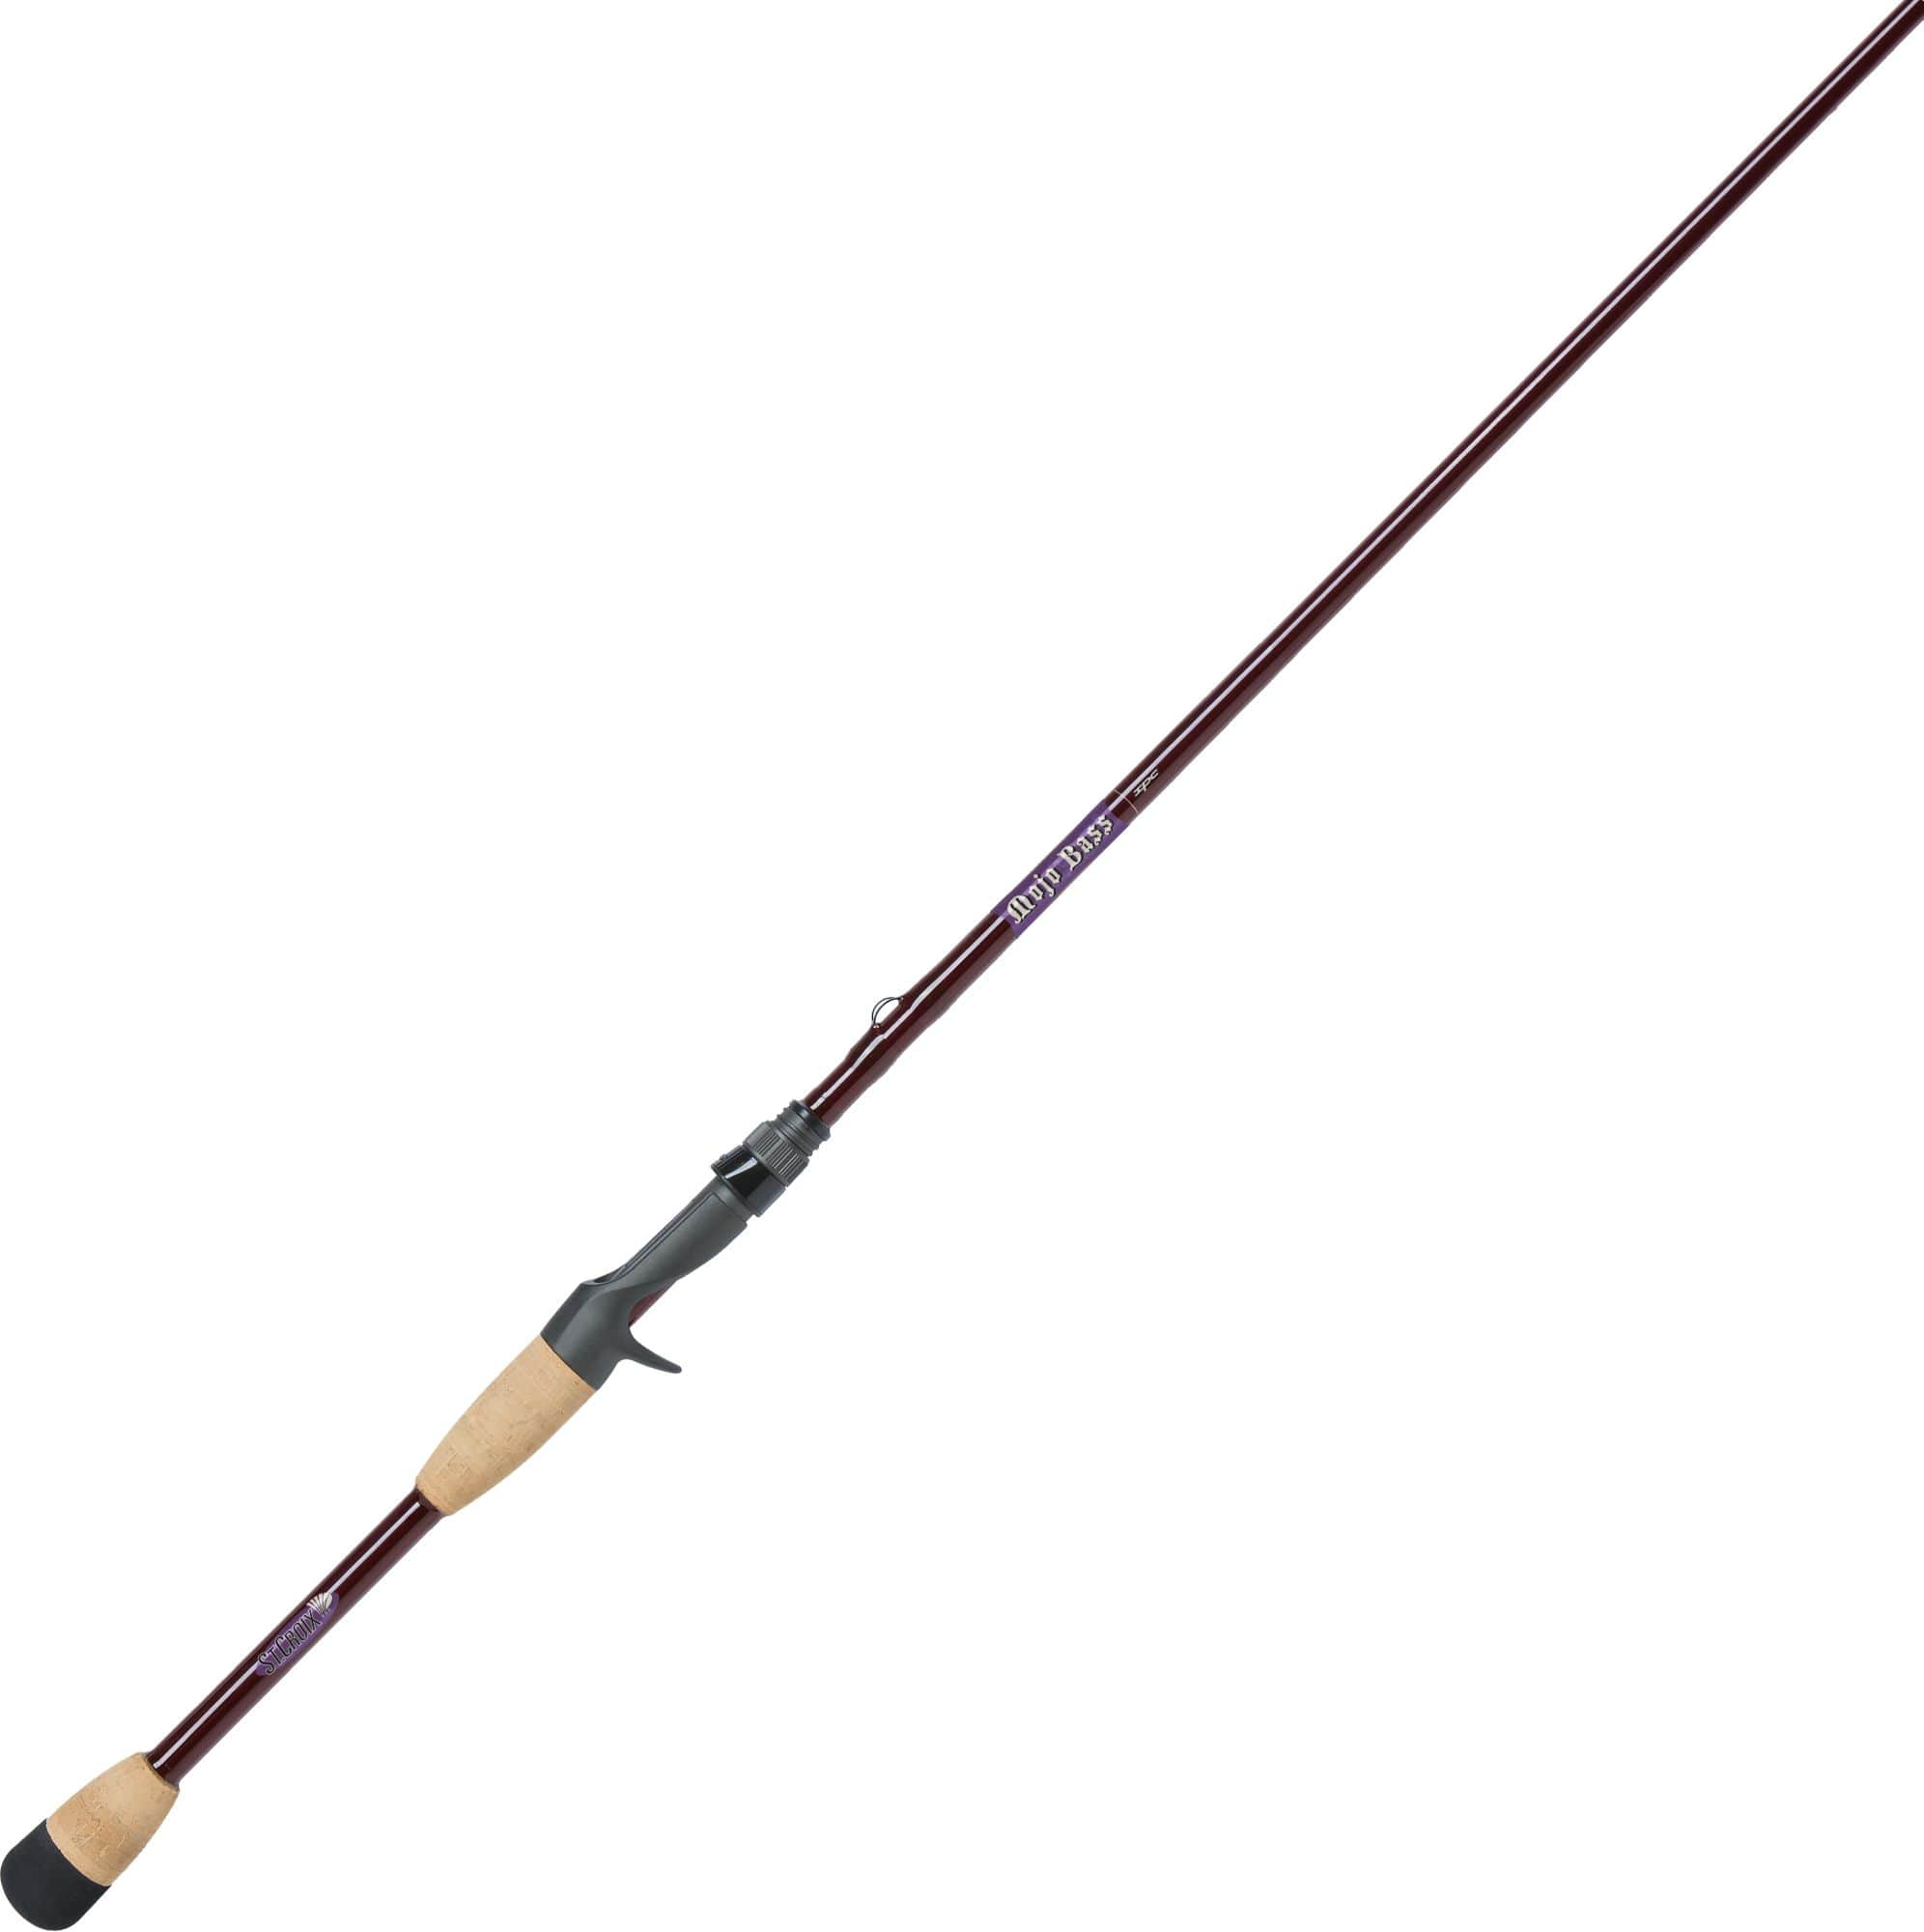 St Croix Mojo Bass Casting Fishing Rod $97.49 in store only